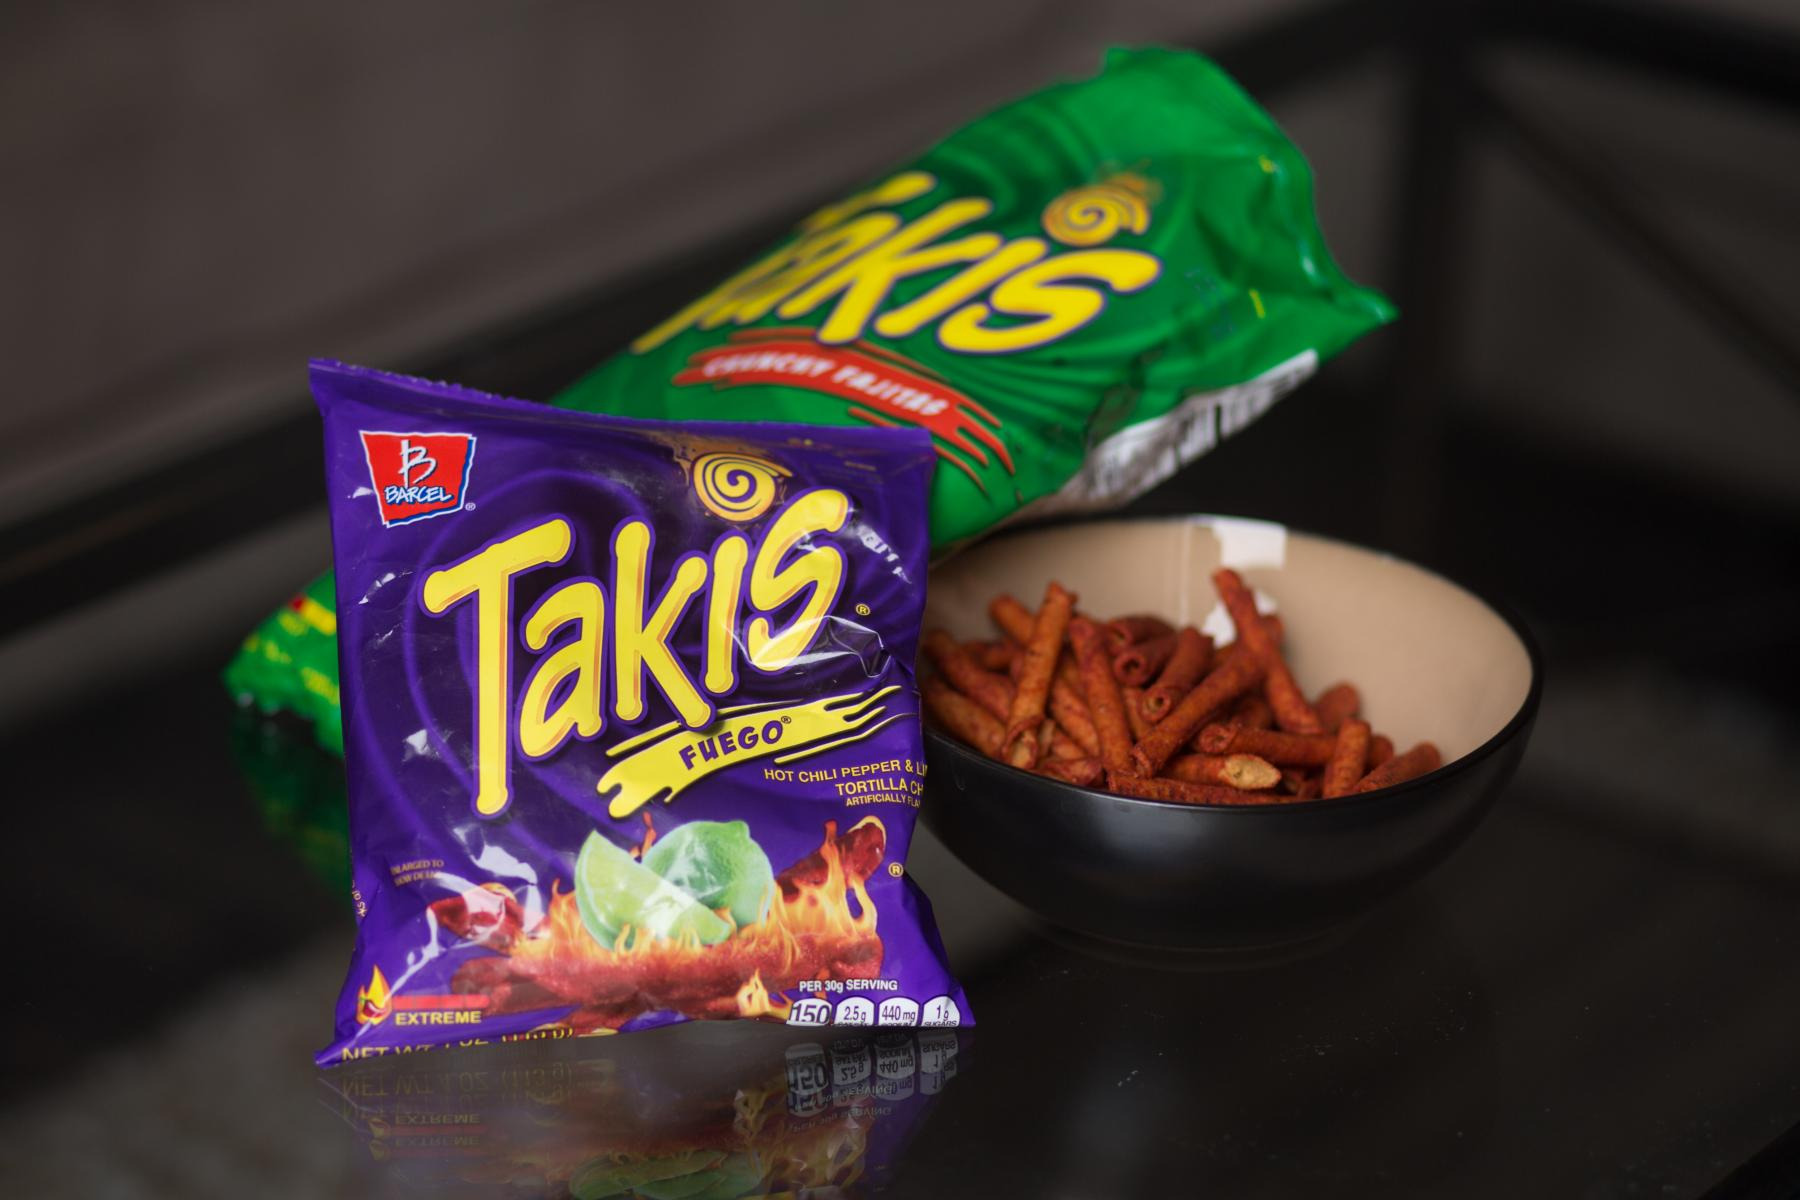 This is a bowl of takis to answer the question